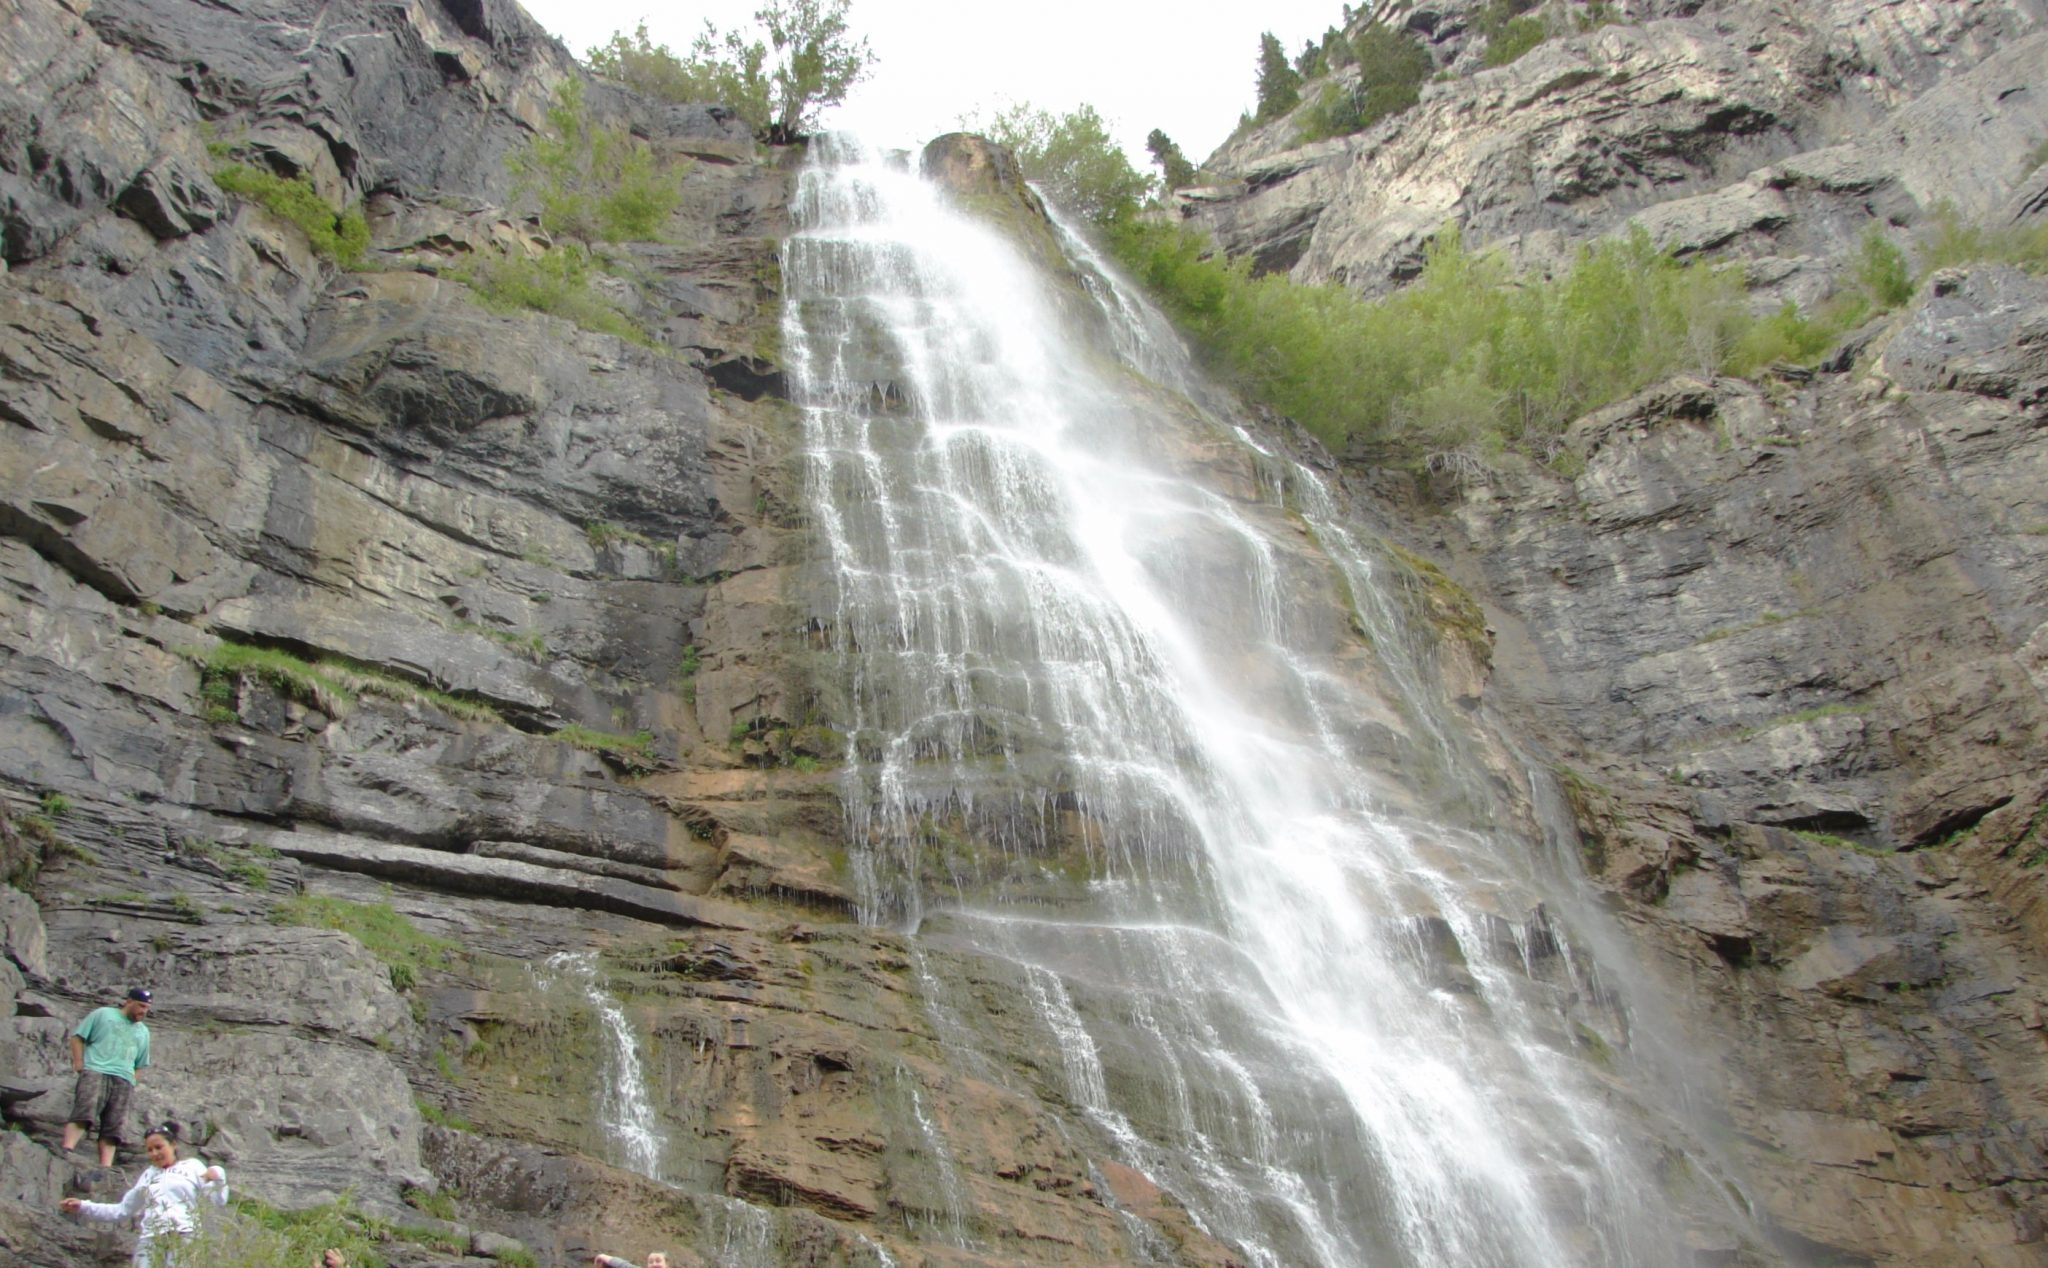 Bridal_Vail_Falls_in_Provo_Canyon